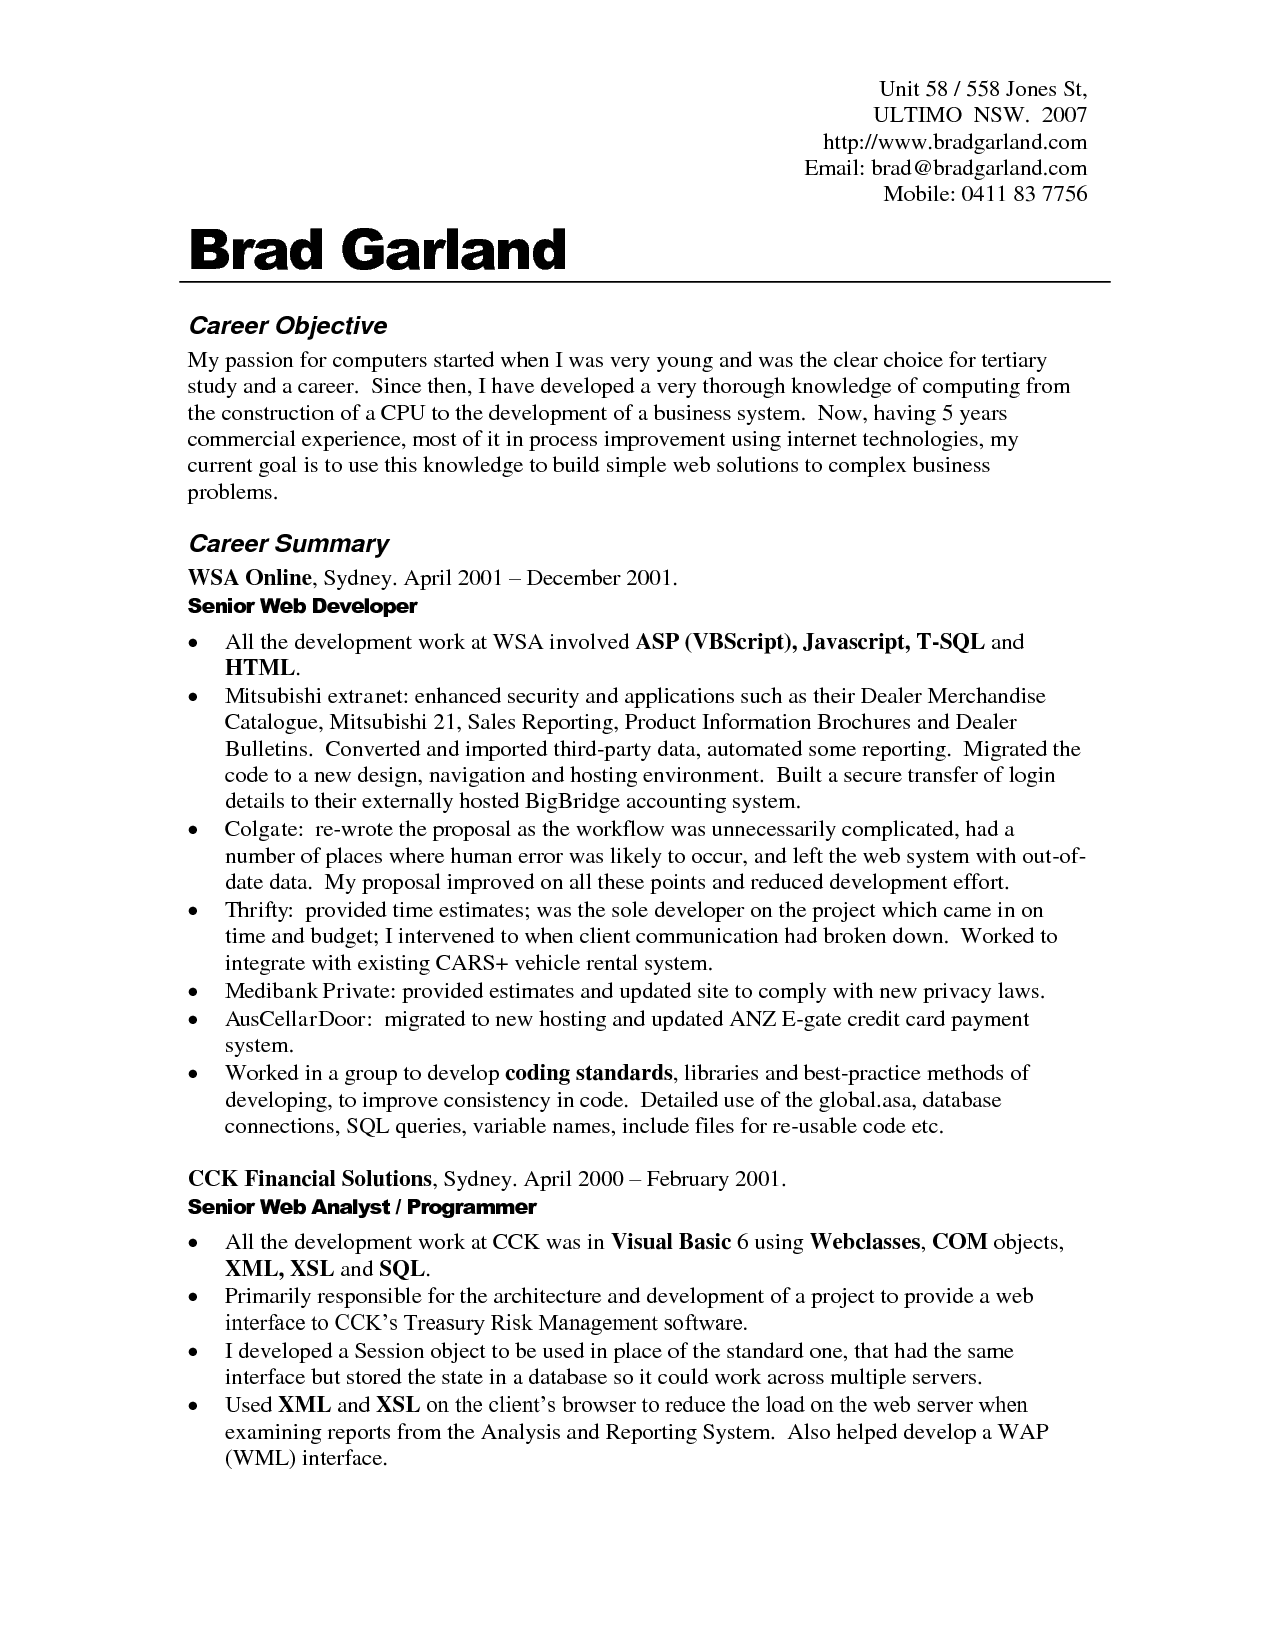 career objective for resume and career objectives statement senior web developer - Good Career Objective For Resume Examples